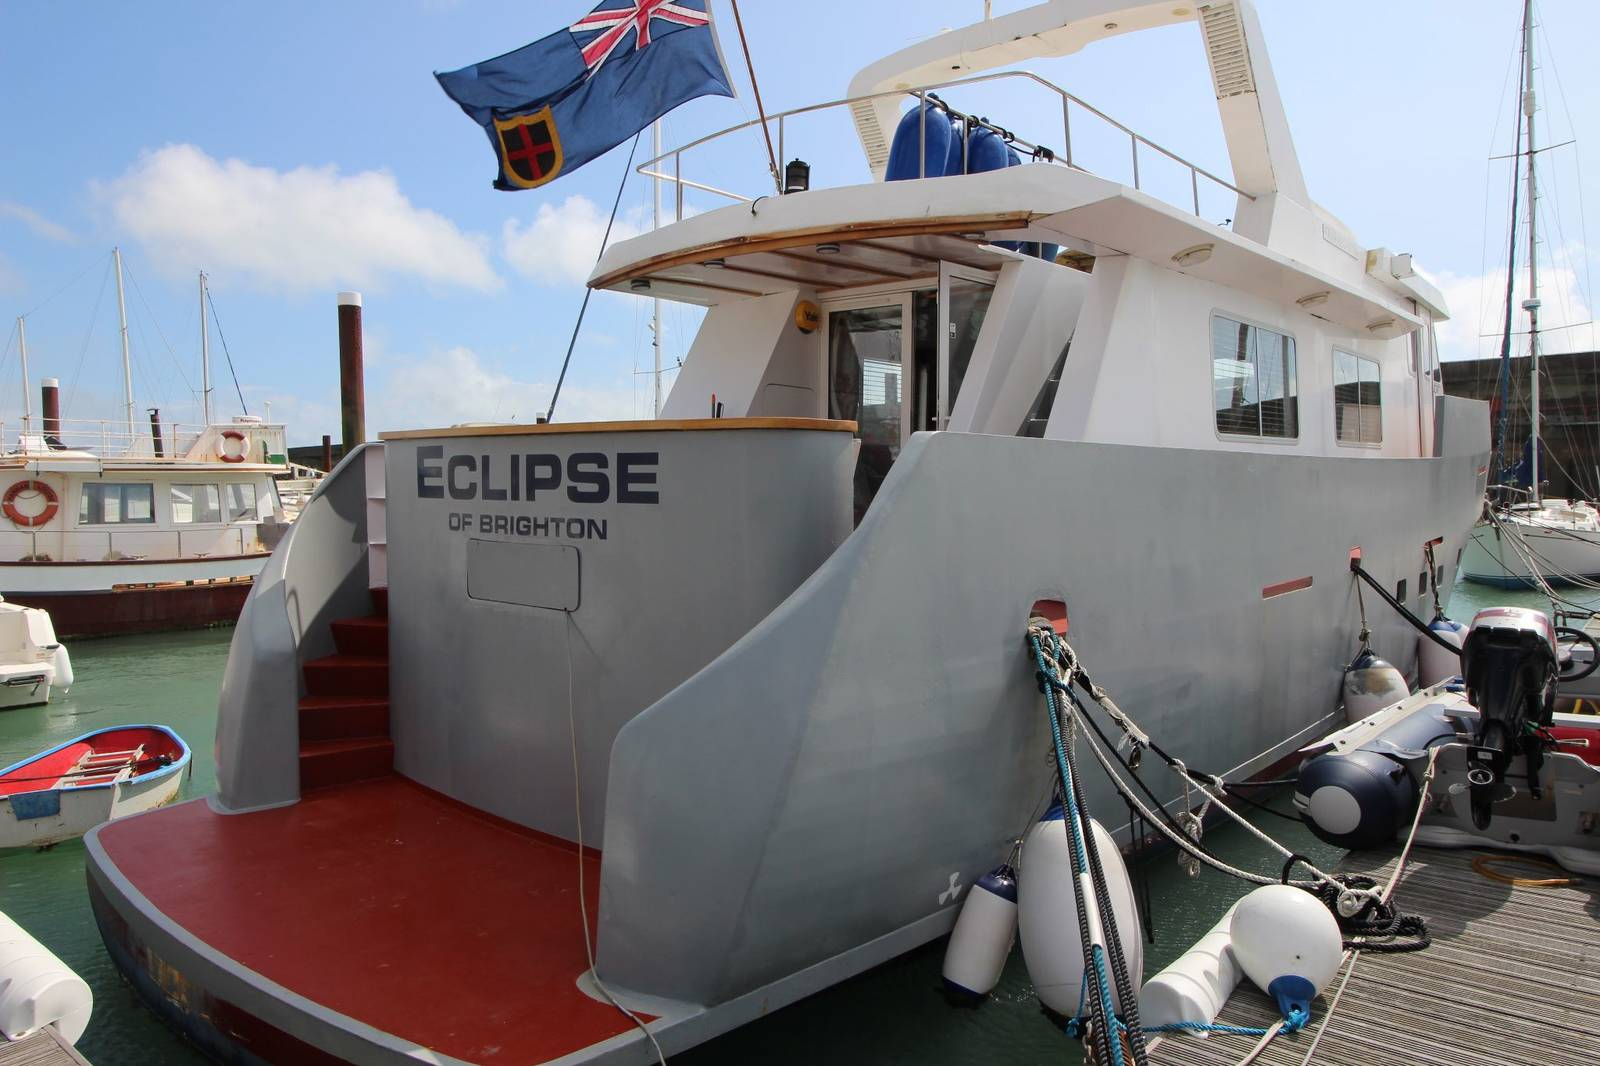 70 2001 Yacht Boat For Sale In Brighton 132 950